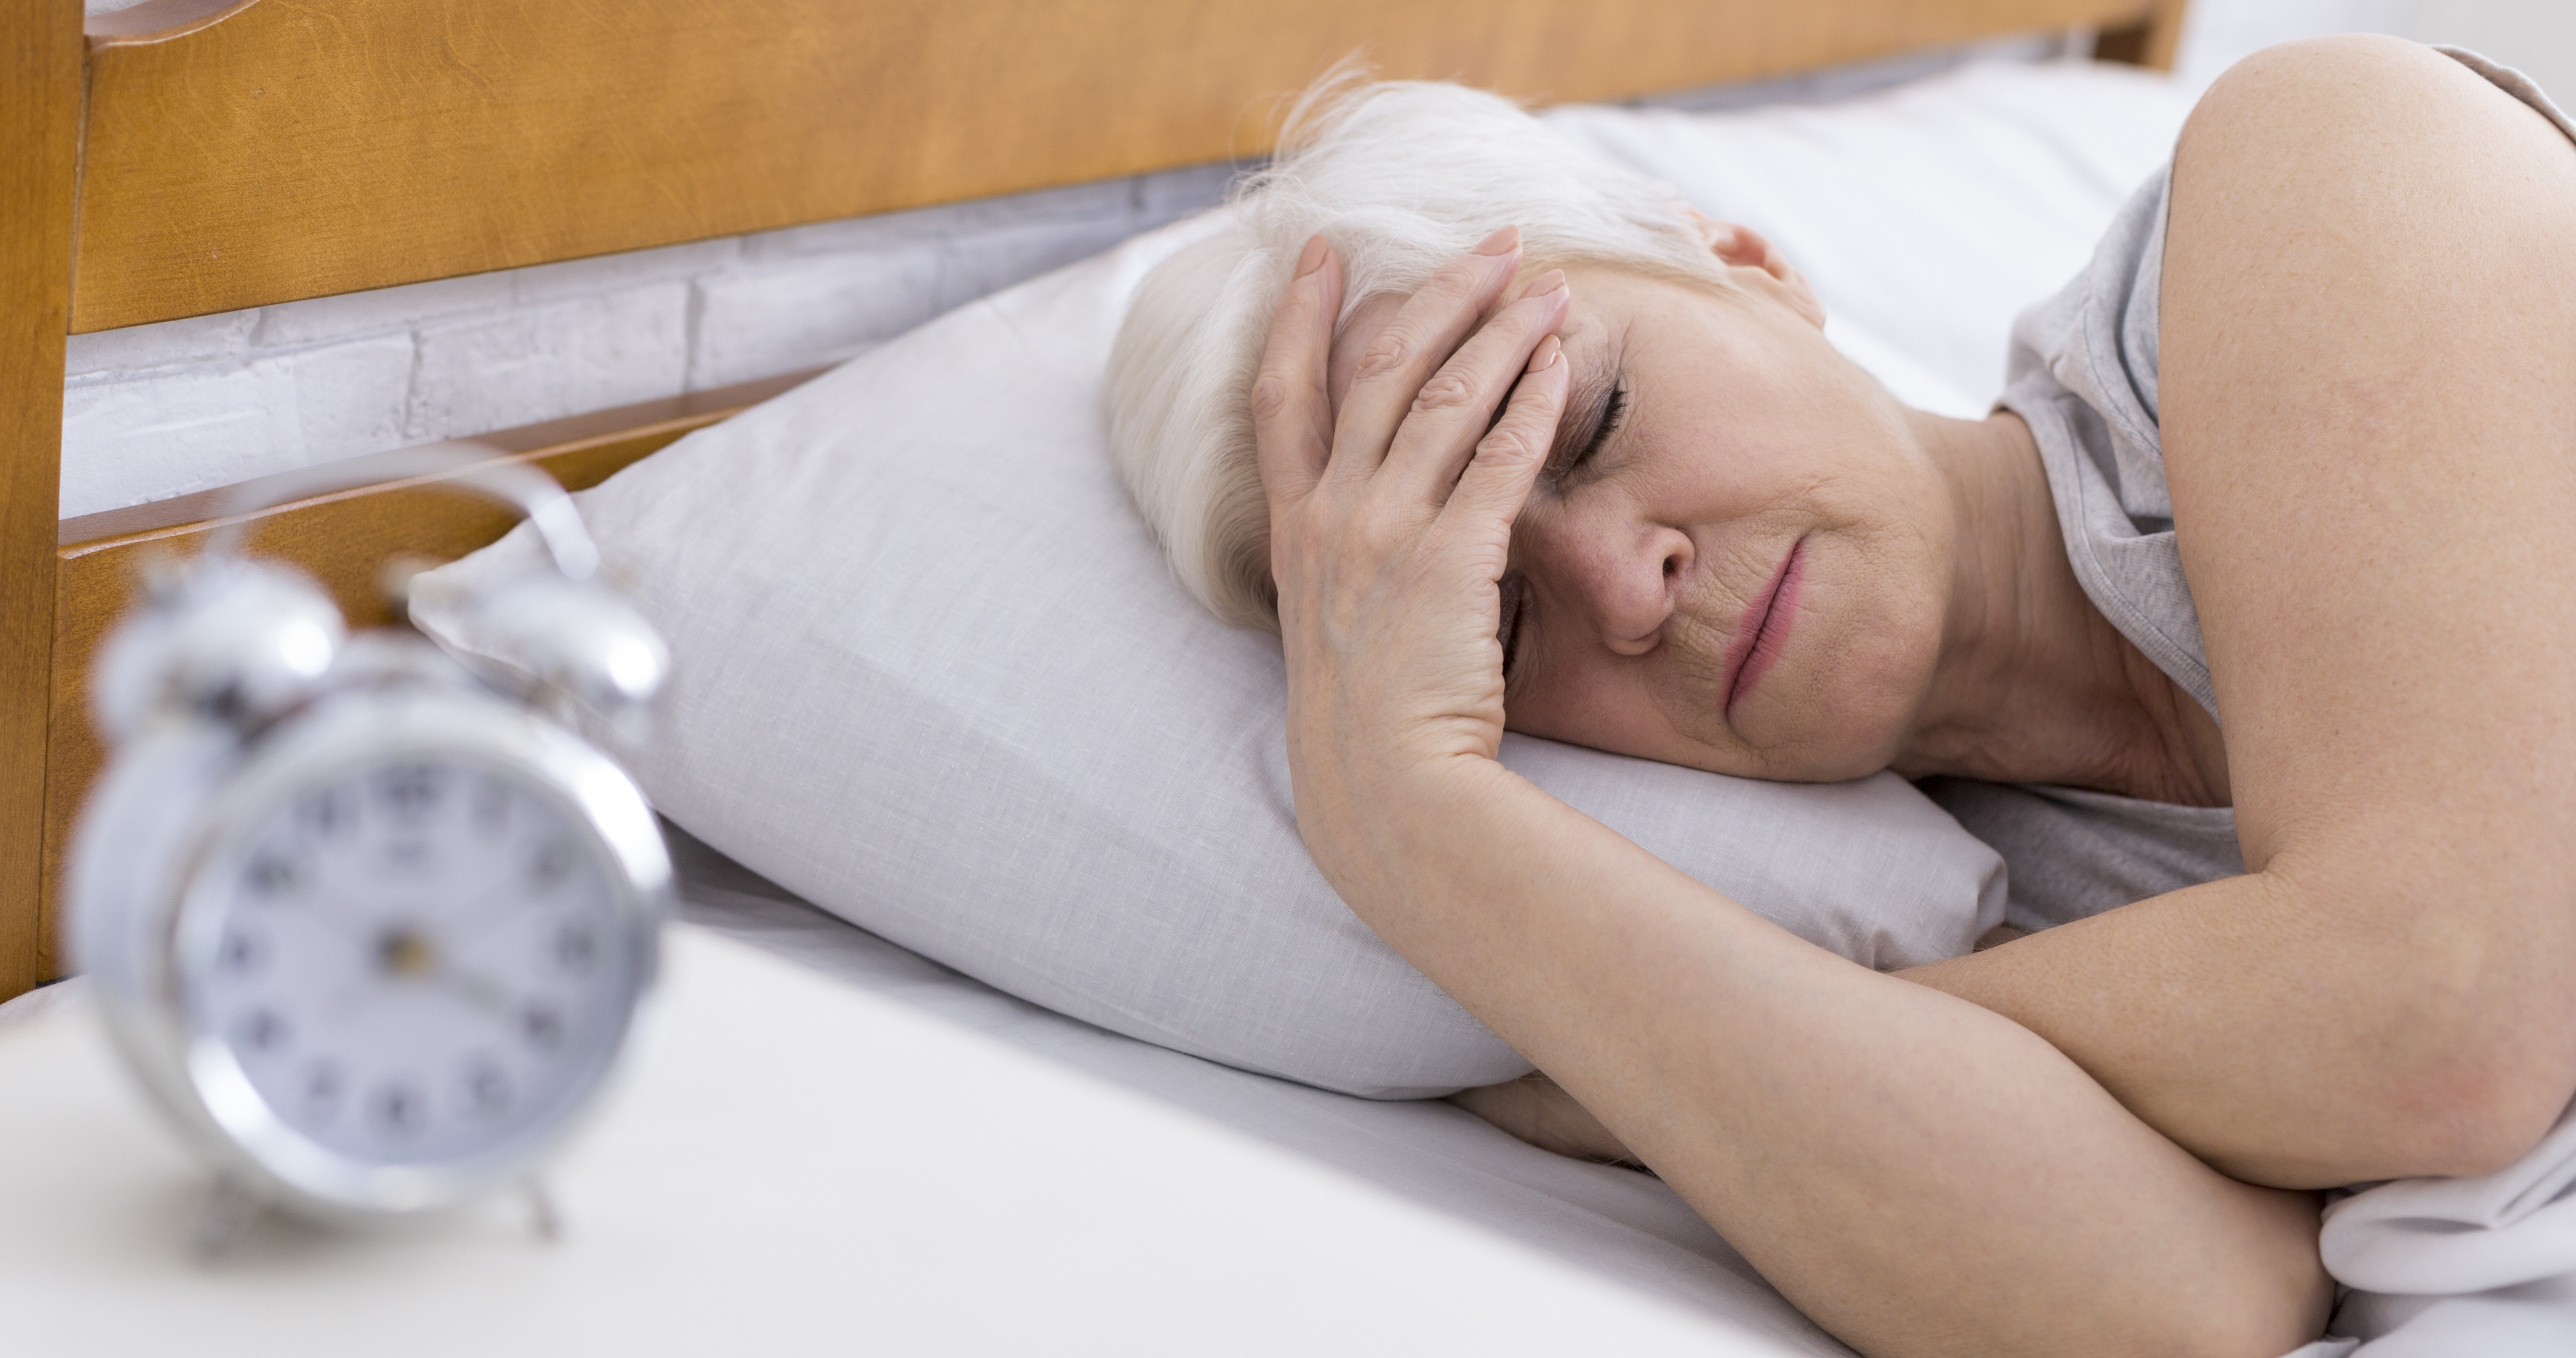 Dealing With Sleep Schedules Impacted by Dementia